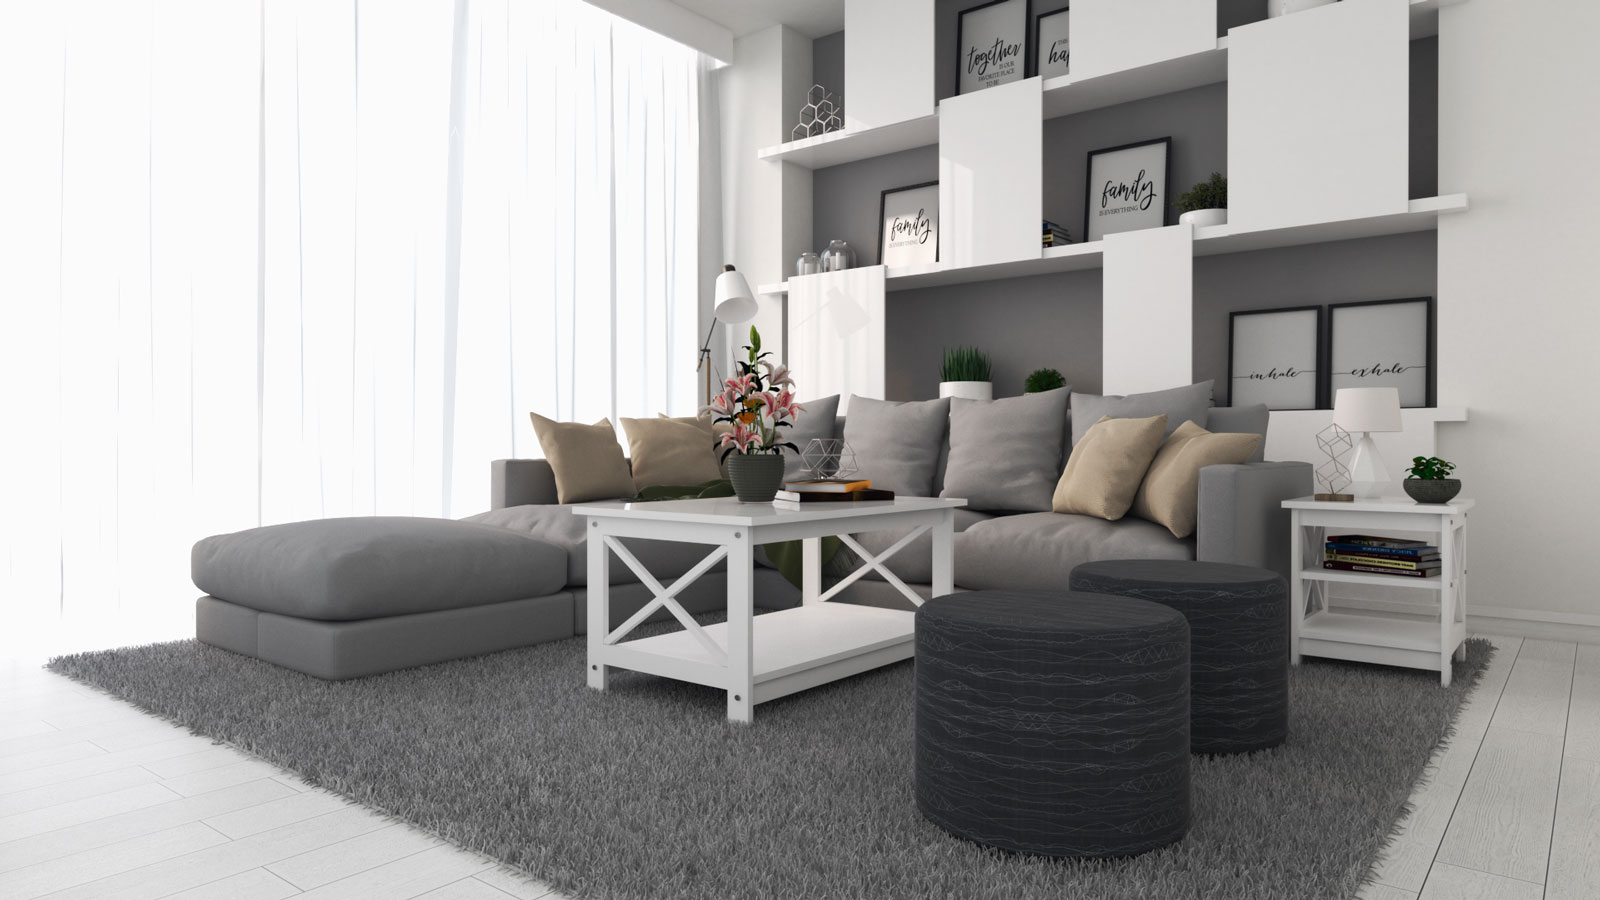 Charming Grey And White Living Room Ideas Roomdsign Com